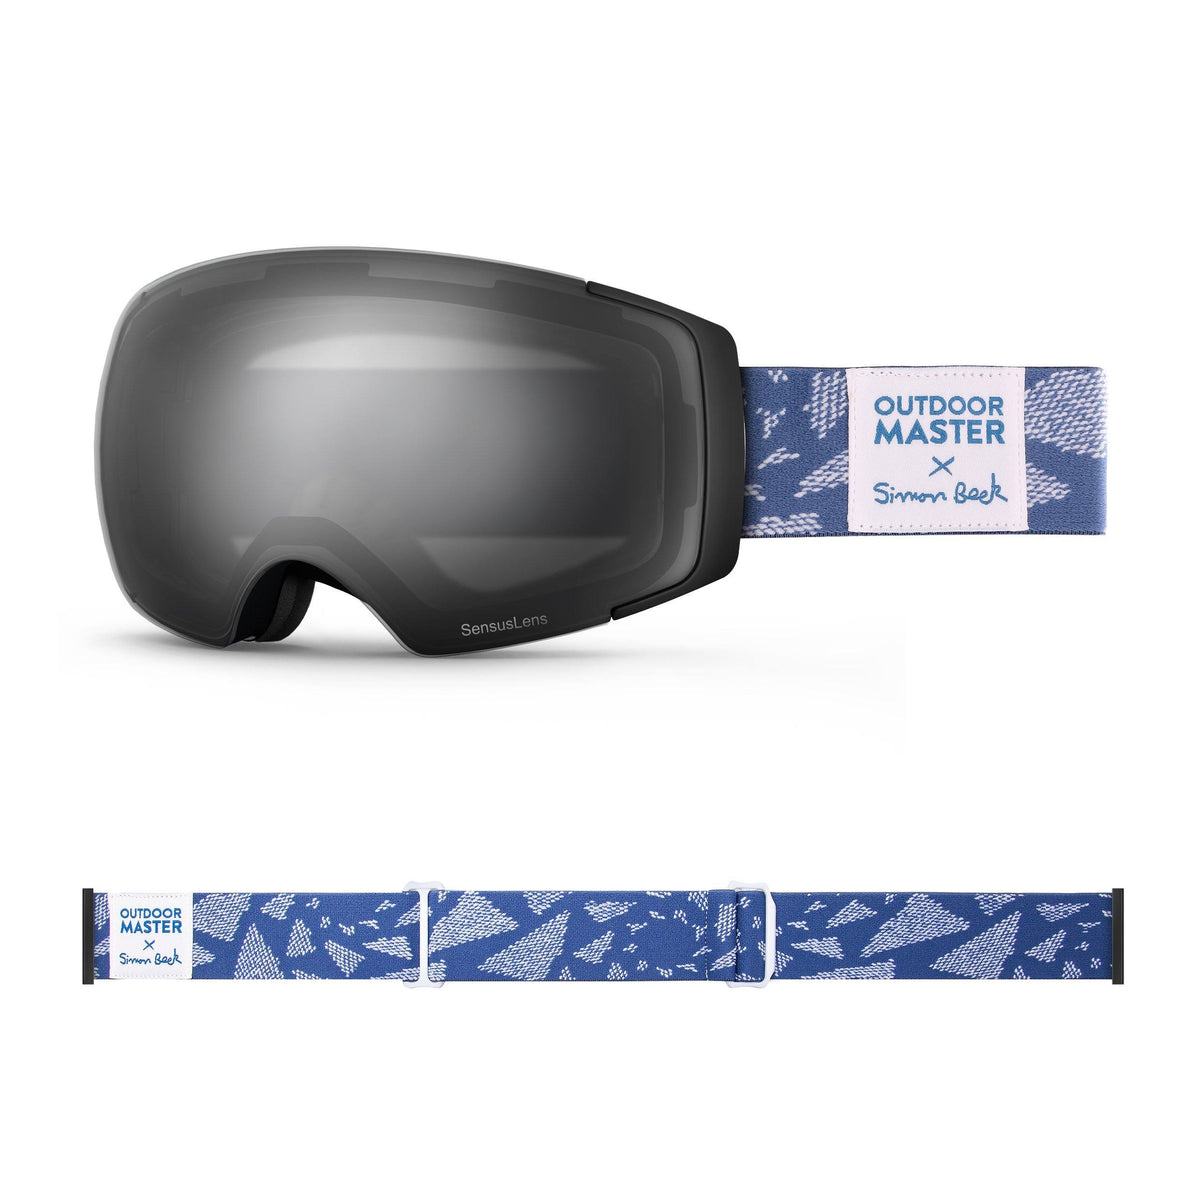 OutdoorMaster x Simon Beck Ski Goggles Pro Series - Snowshoeing Art Limited Edition OutdoorMaster GreenLens VLT 10% TAC Grey With REVO Silver Polarized Flying Triangles